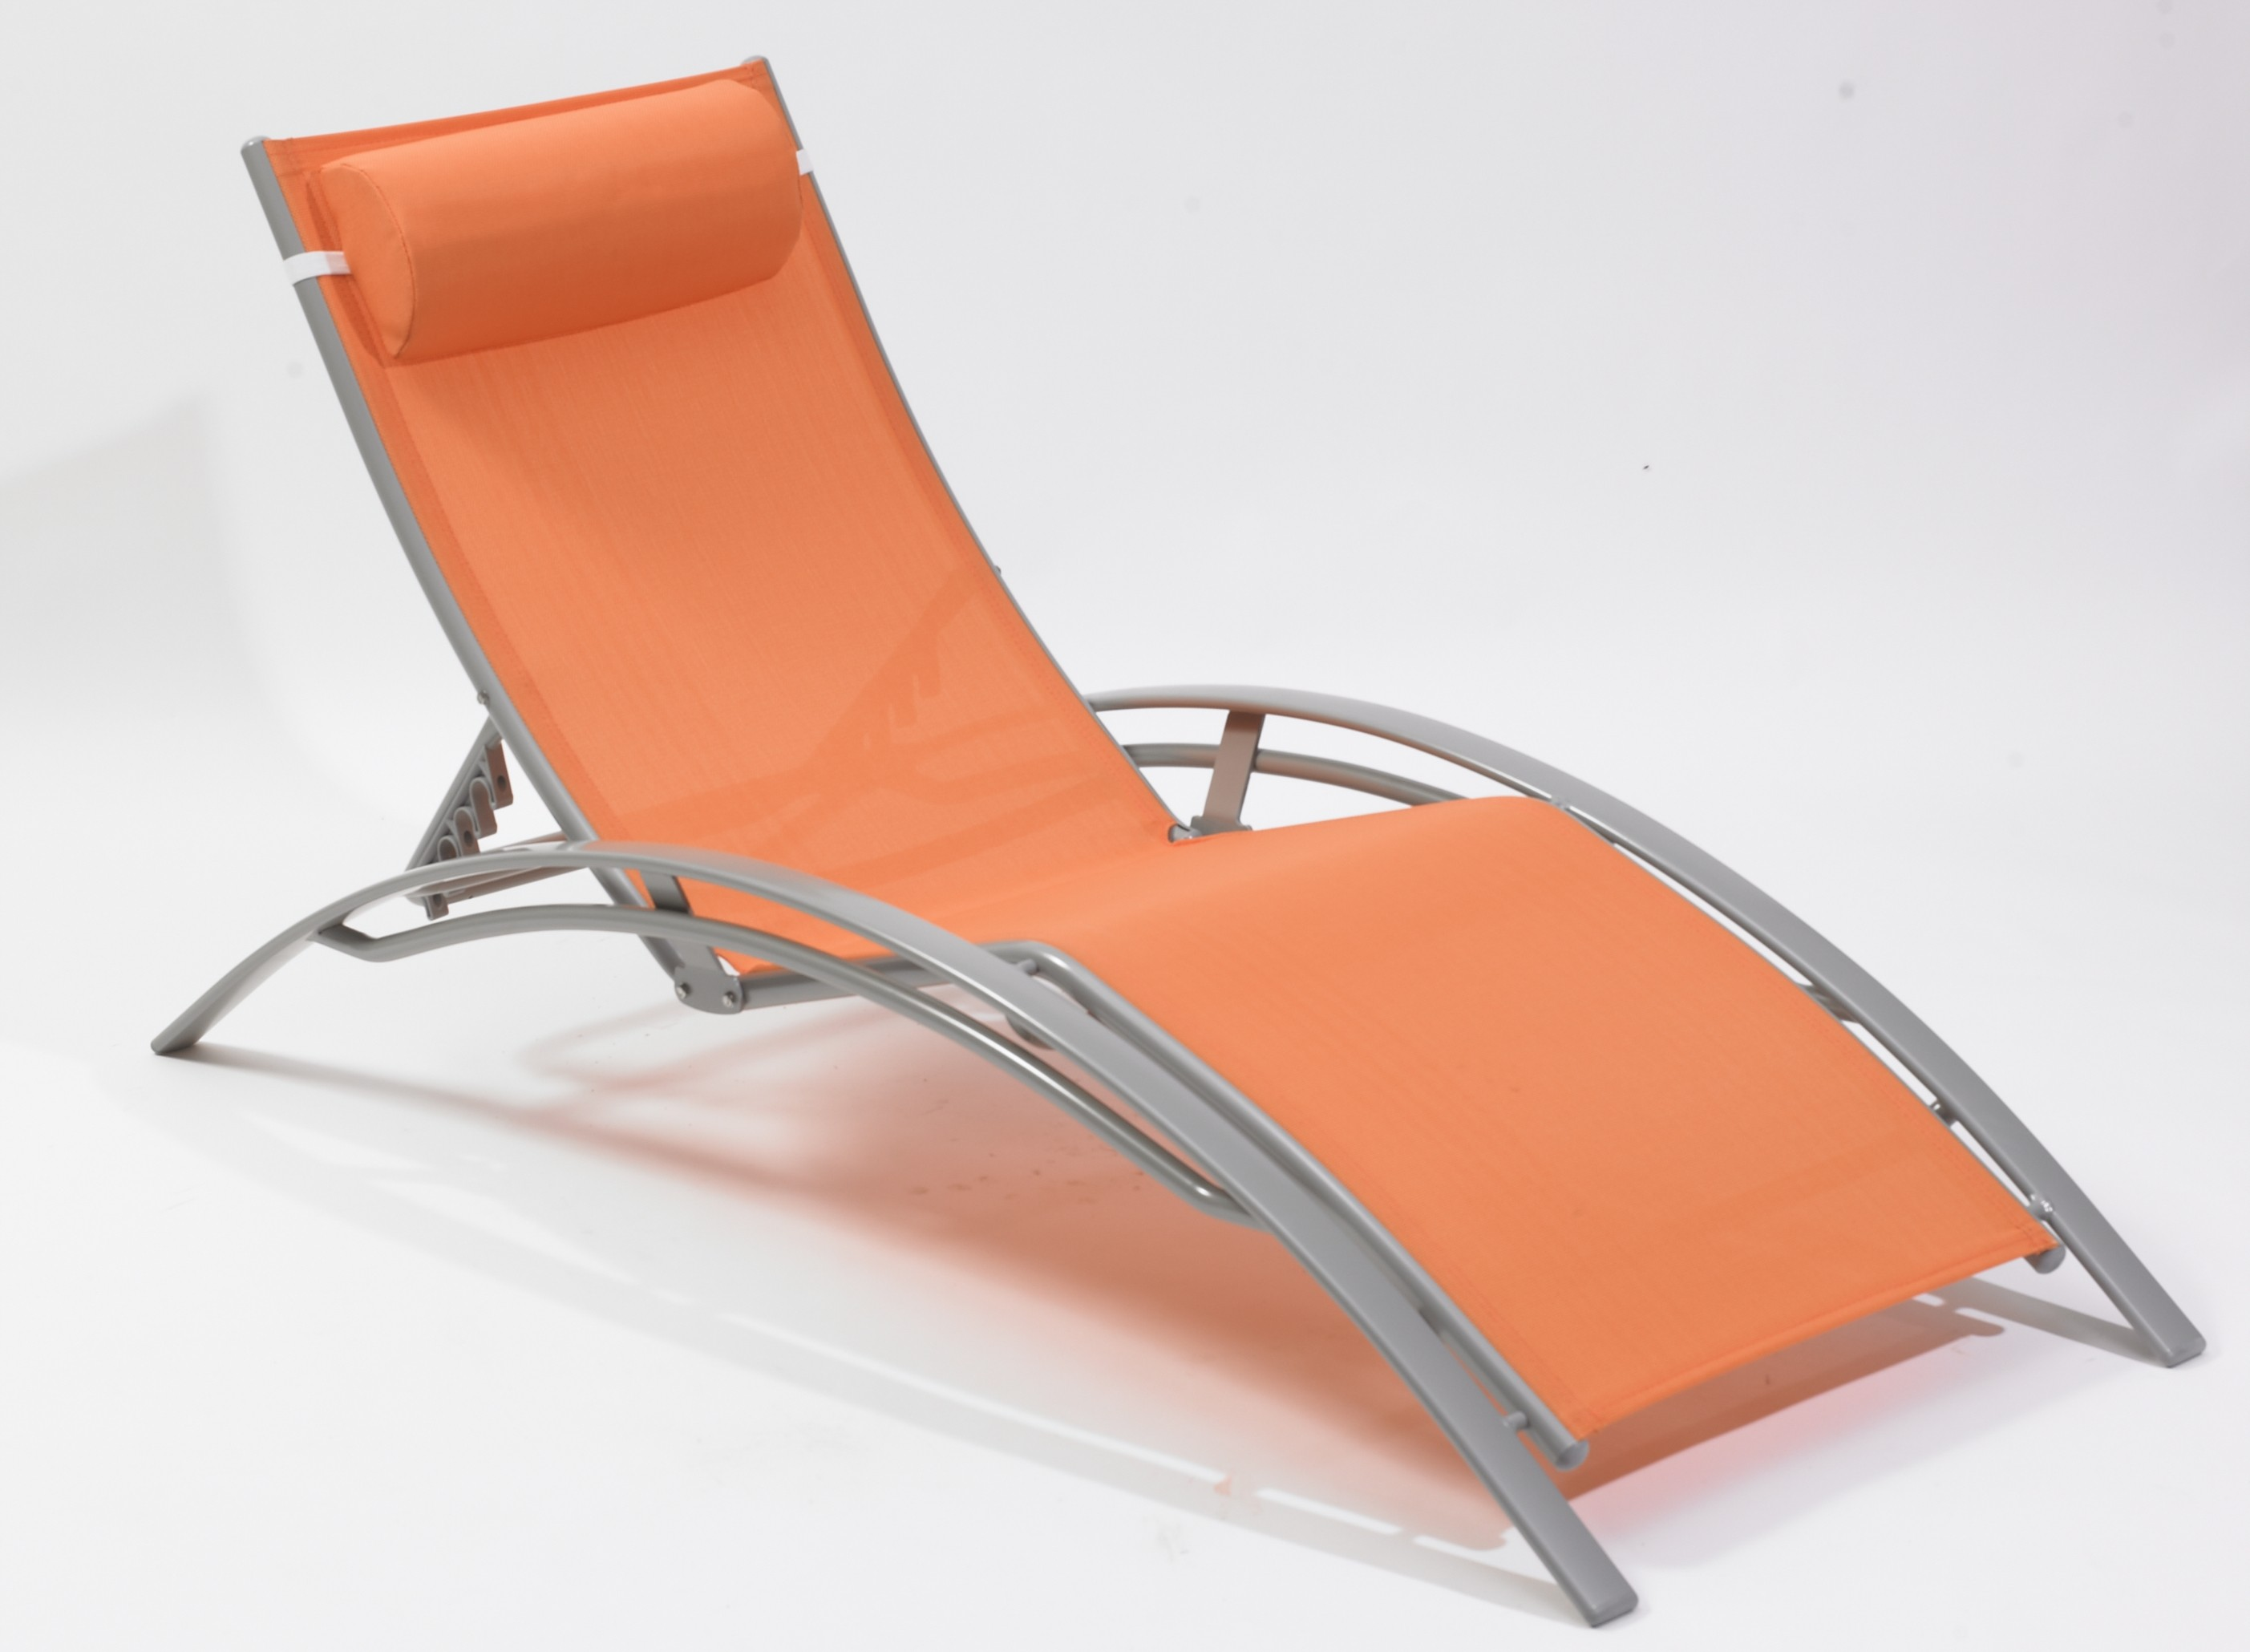 chaise longue multi positions aluminium orange. Black Bedroom Furniture Sets. Home Design Ideas